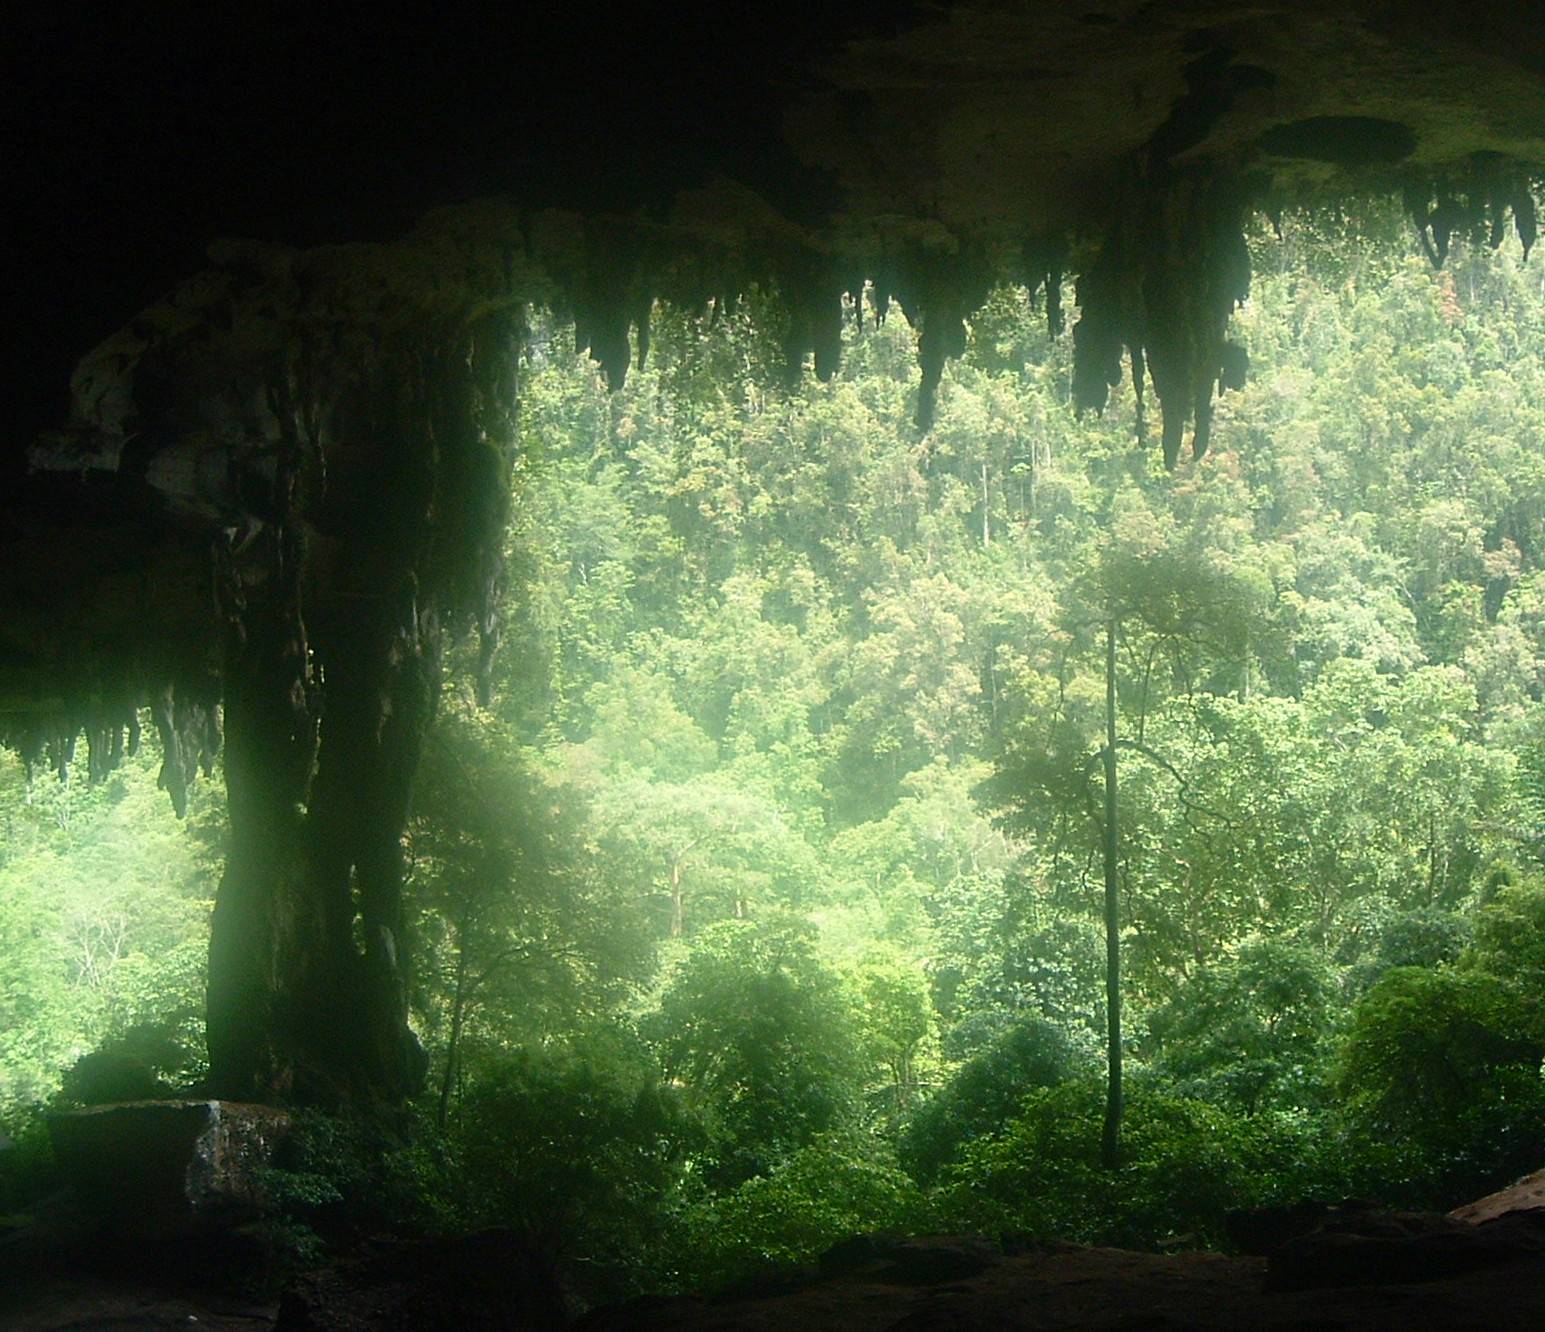 niah caves national park.JPG